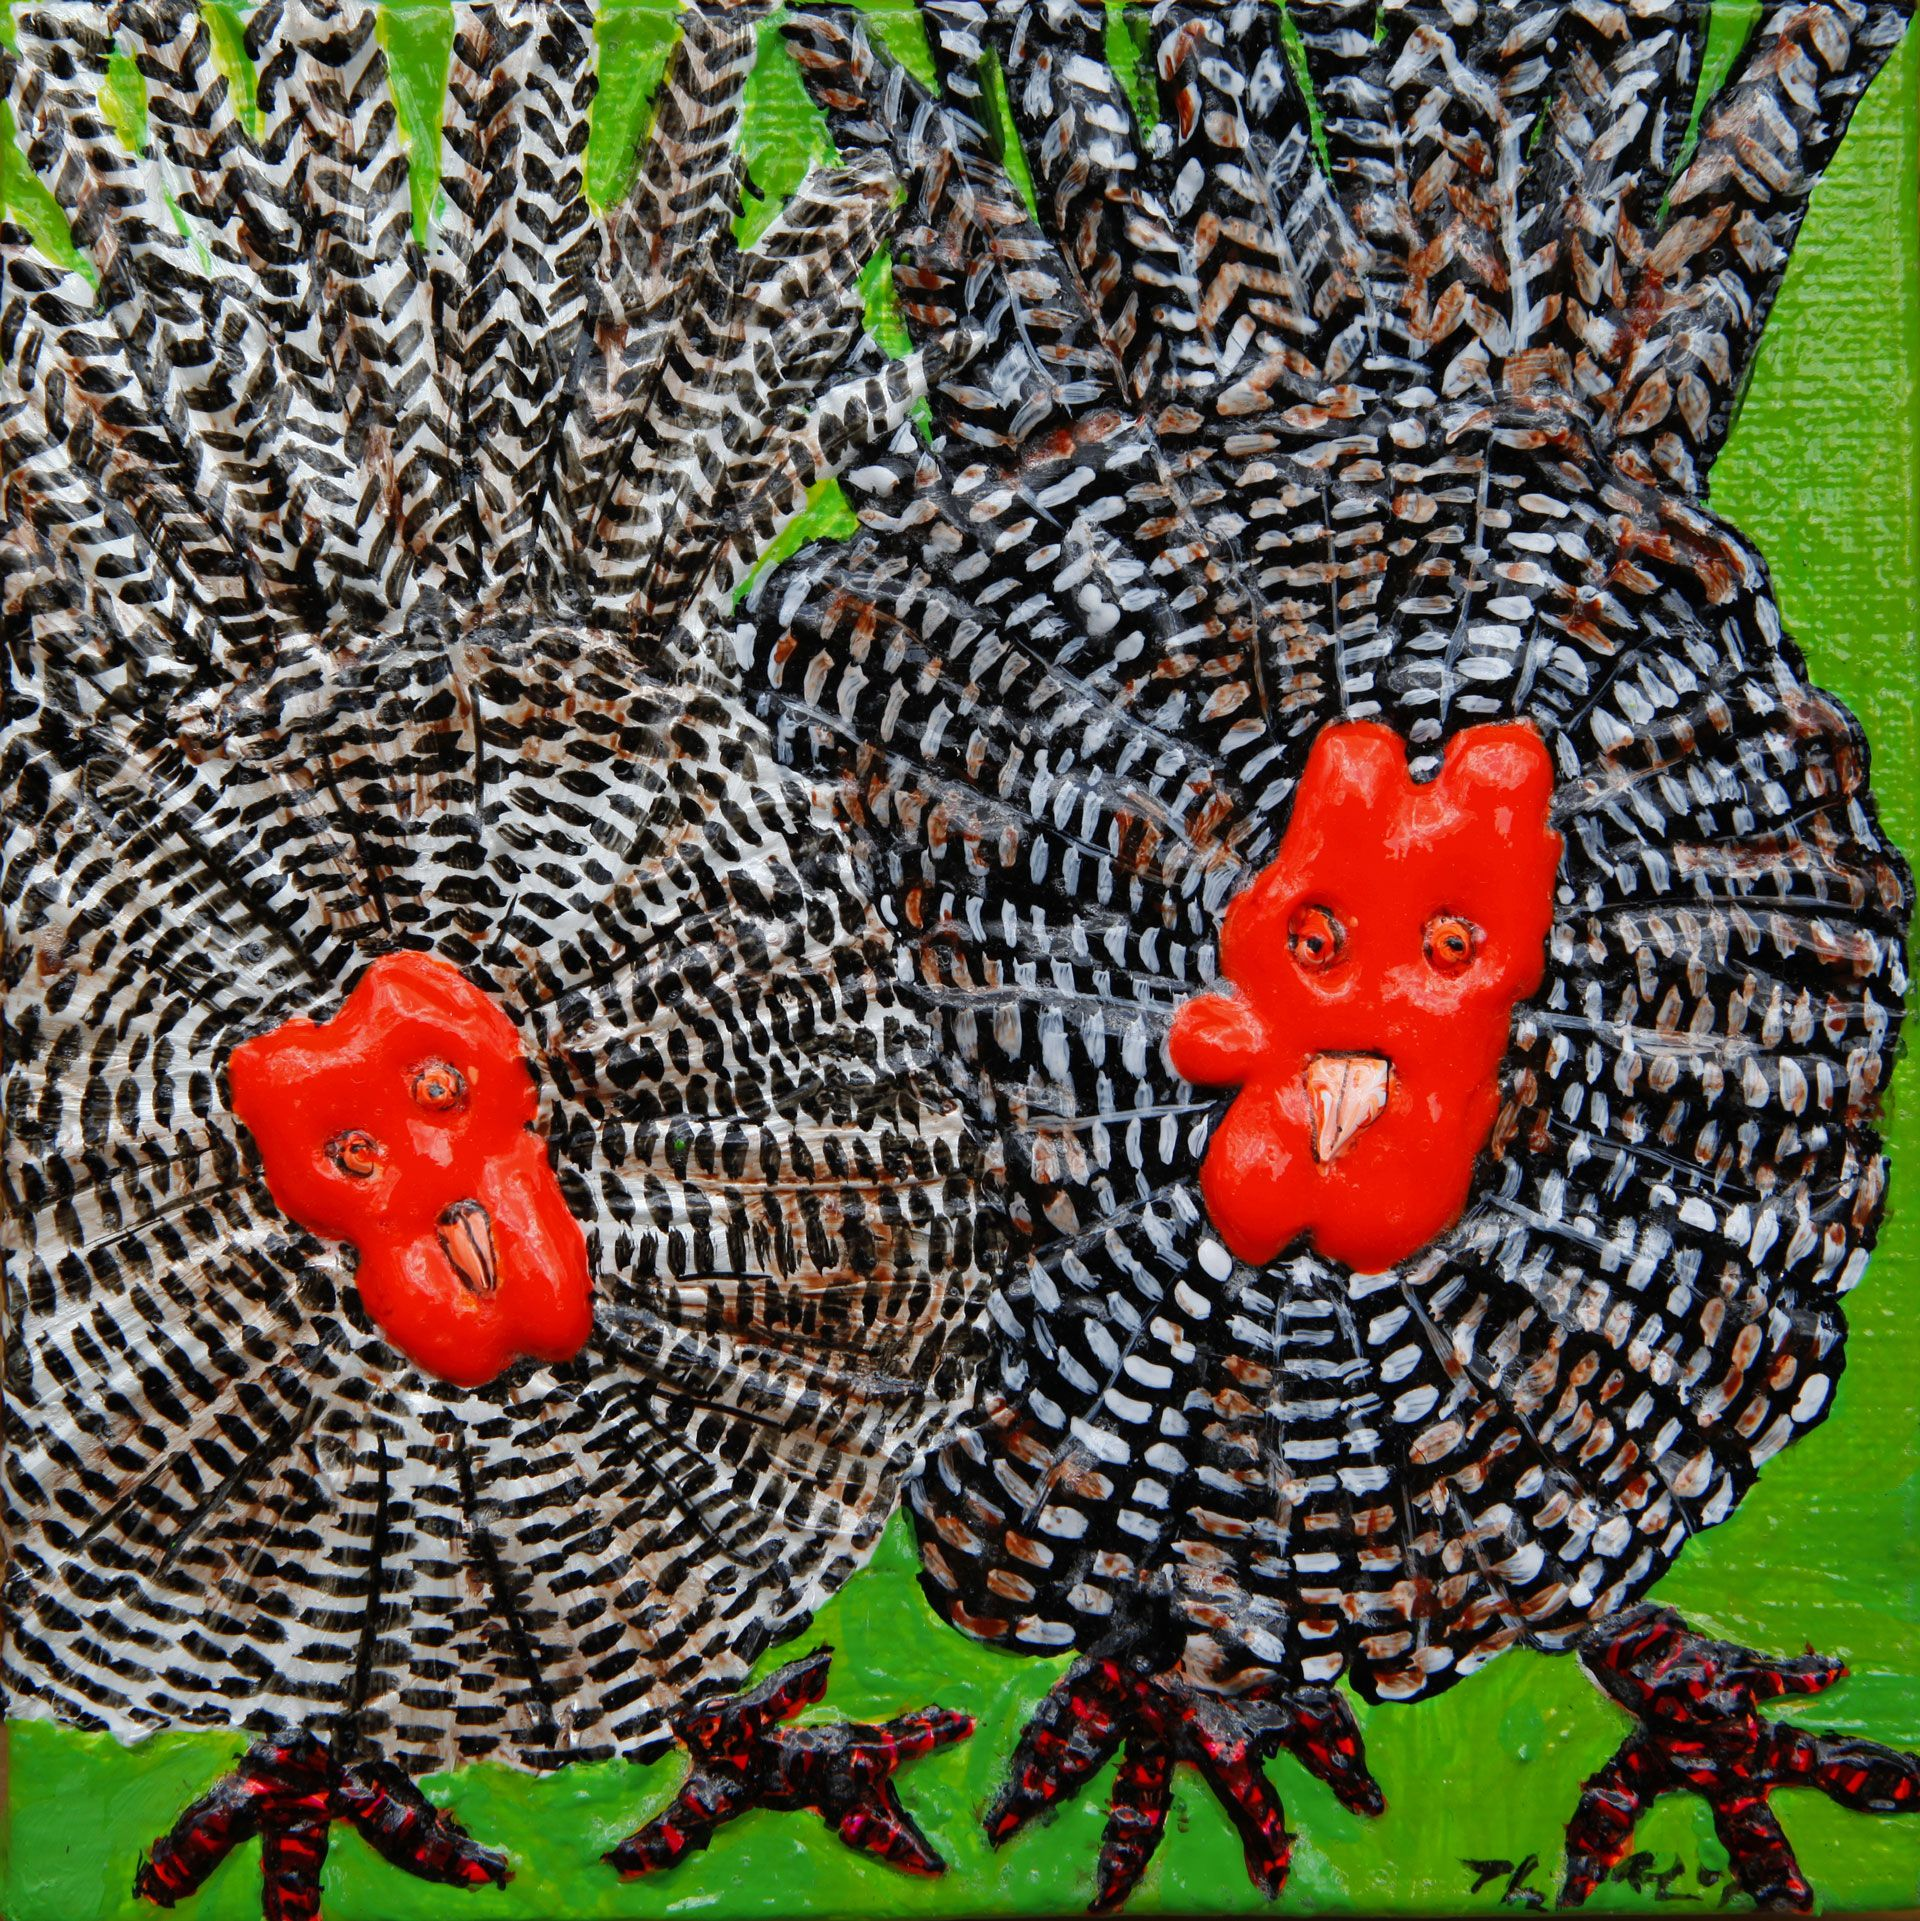 http://www.omae.co/discover/korean-ogol-chicken-painting/